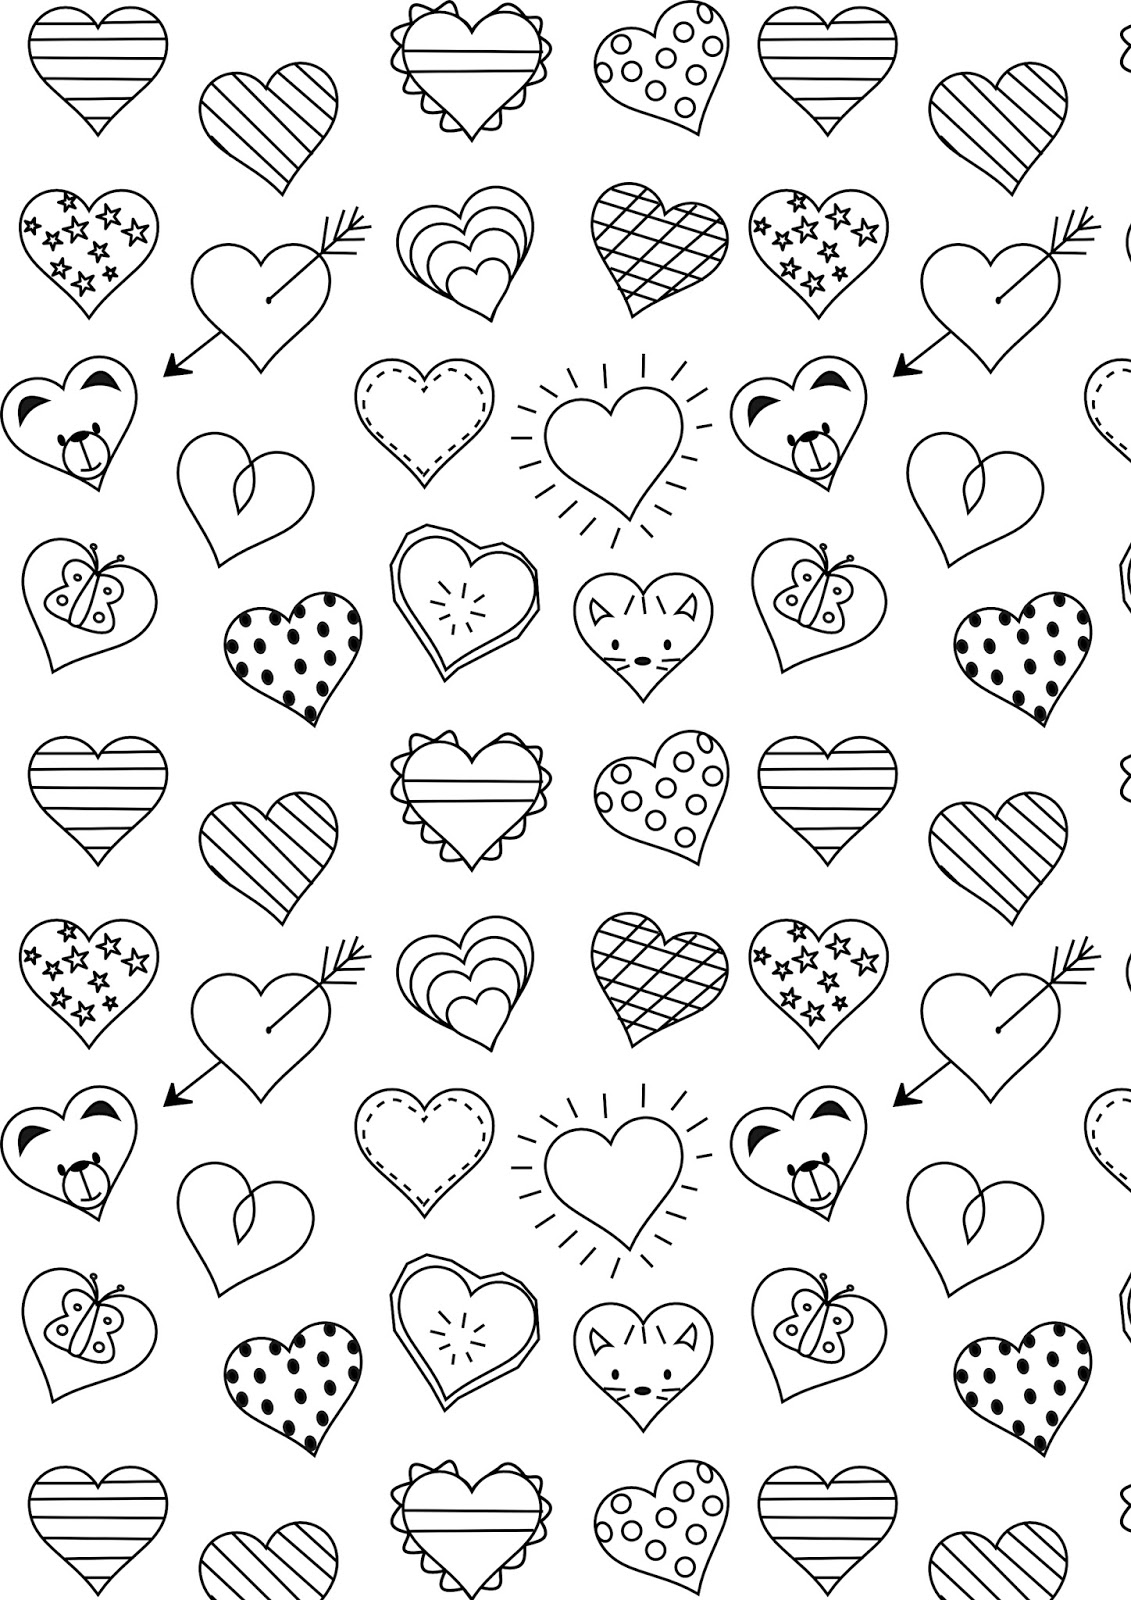 free printable heart coloring pages for kids free printable heart coloring page ausdruckbare kids coloring printable pages free heart for